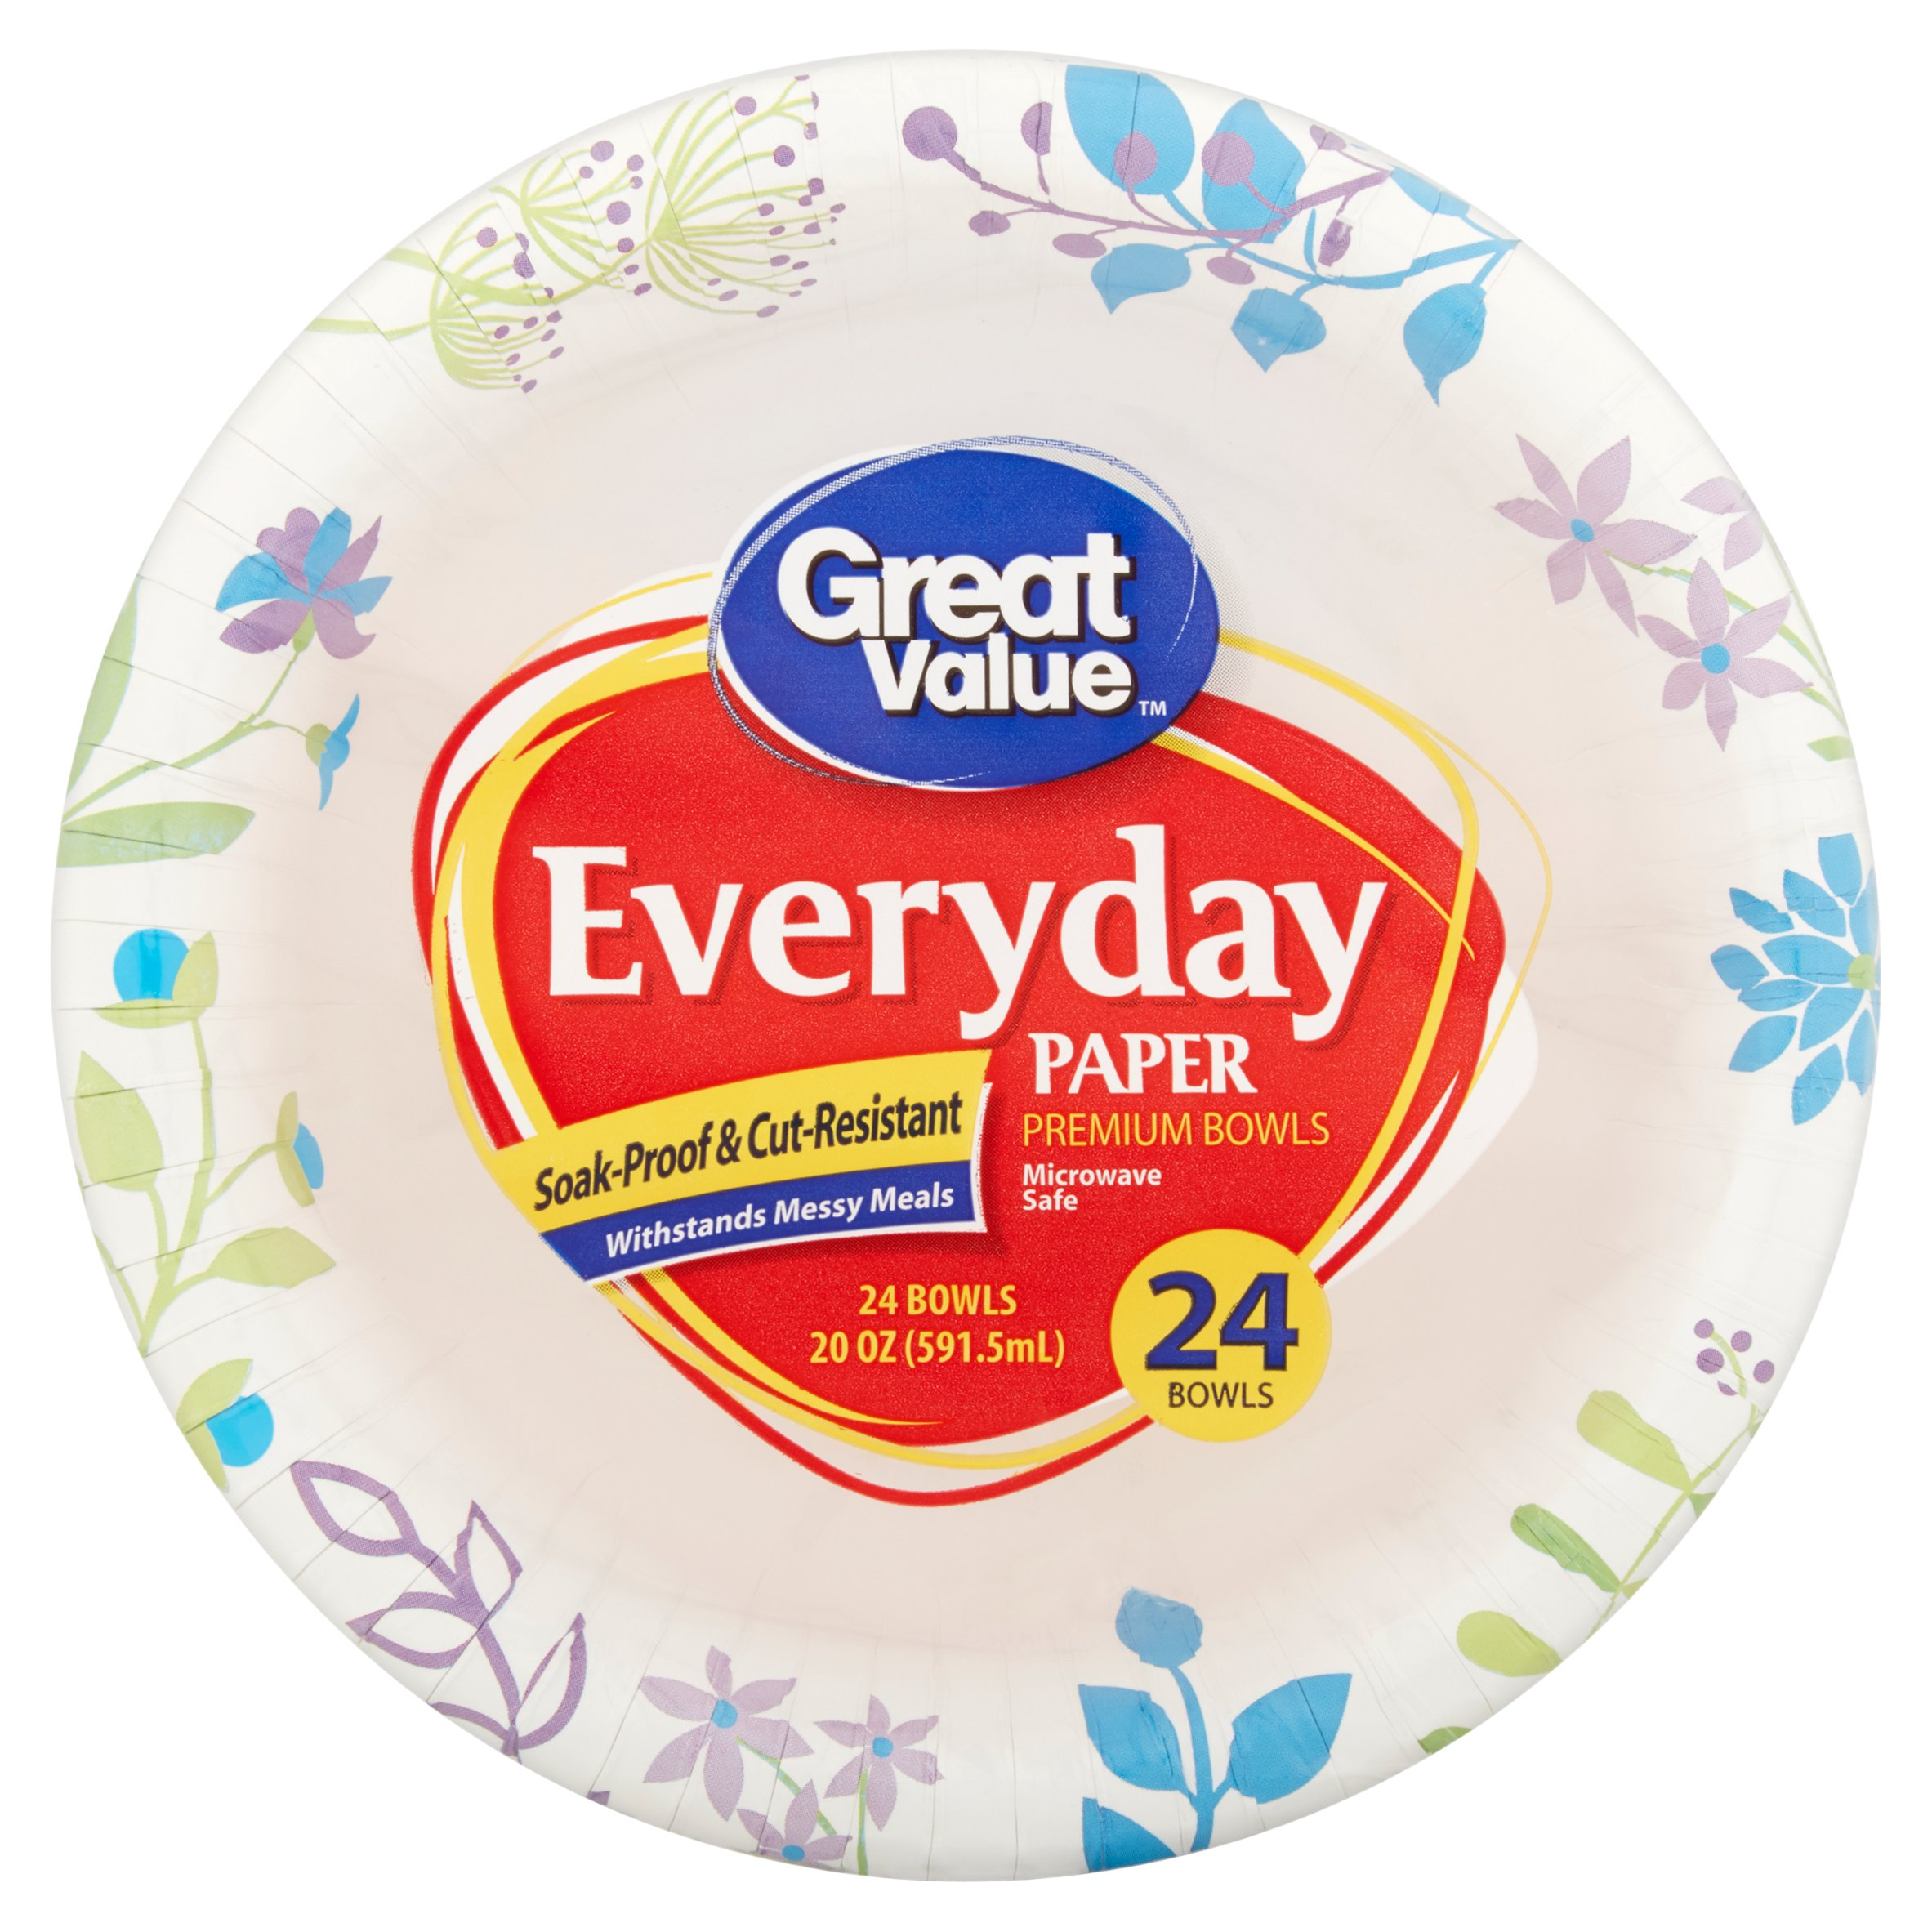 Great Value Everyday Paper Premium Bowls, 20 oz, 24 count